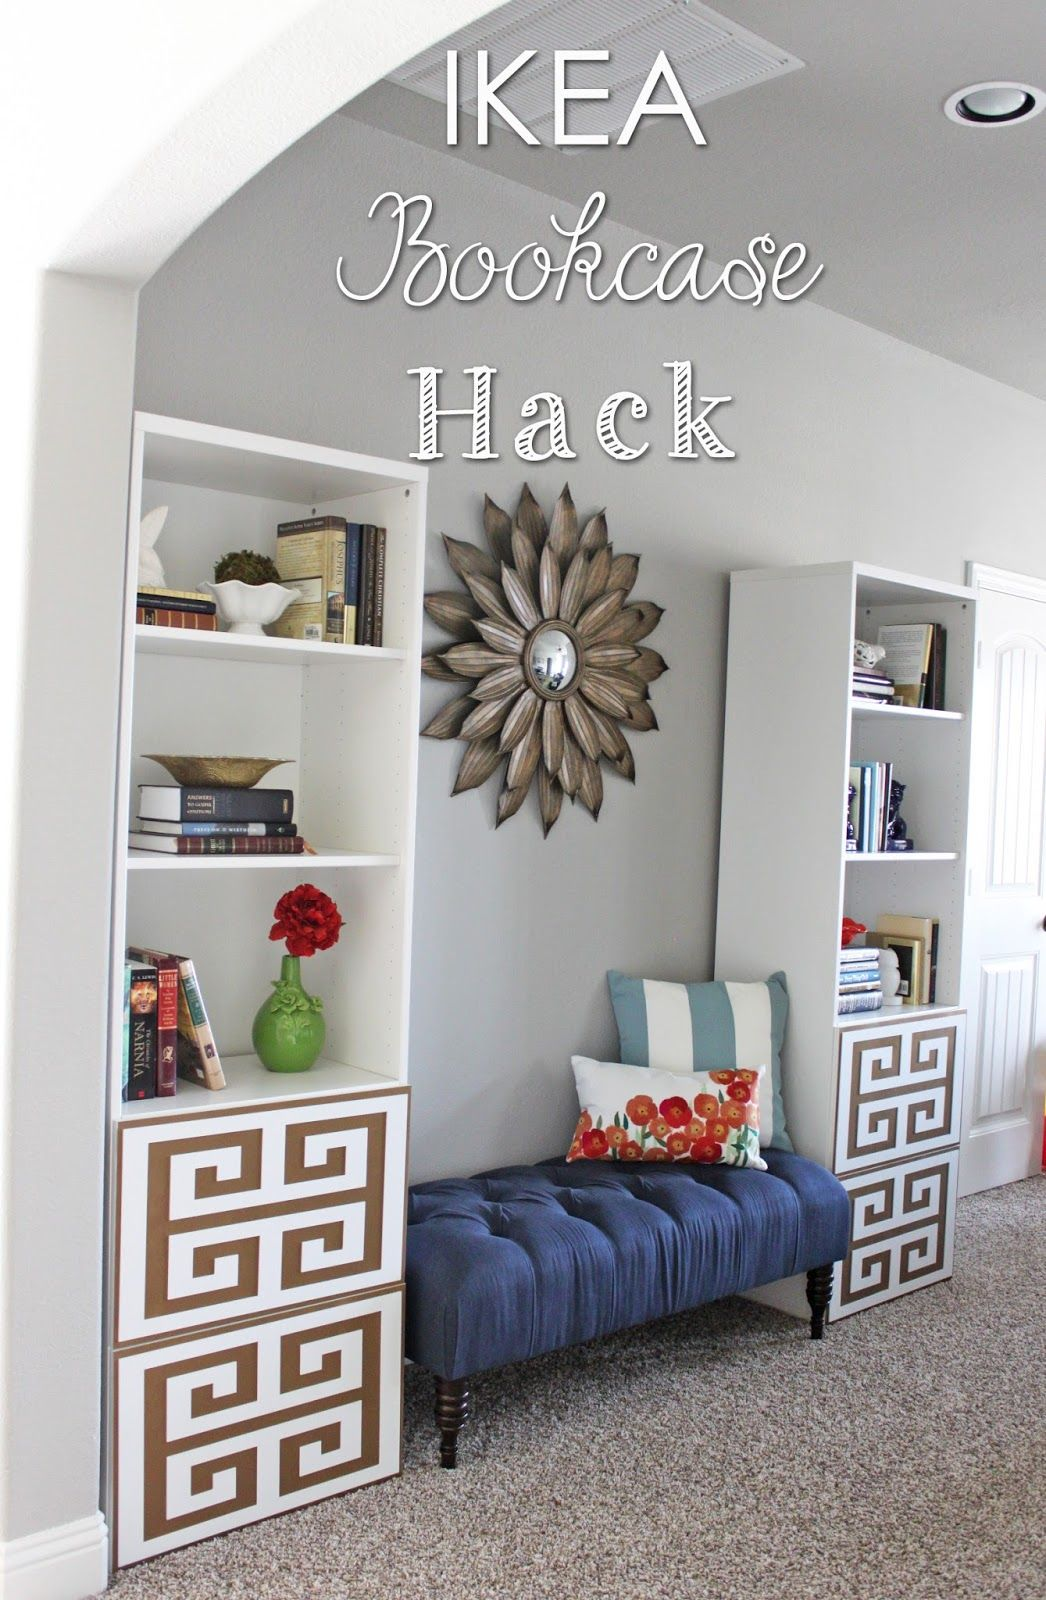 ikea bookshelf hack billy b cherregal mit t ren im griechischen stil ideas para el. Black Bedroom Furniture Sets. Home Design Ideas